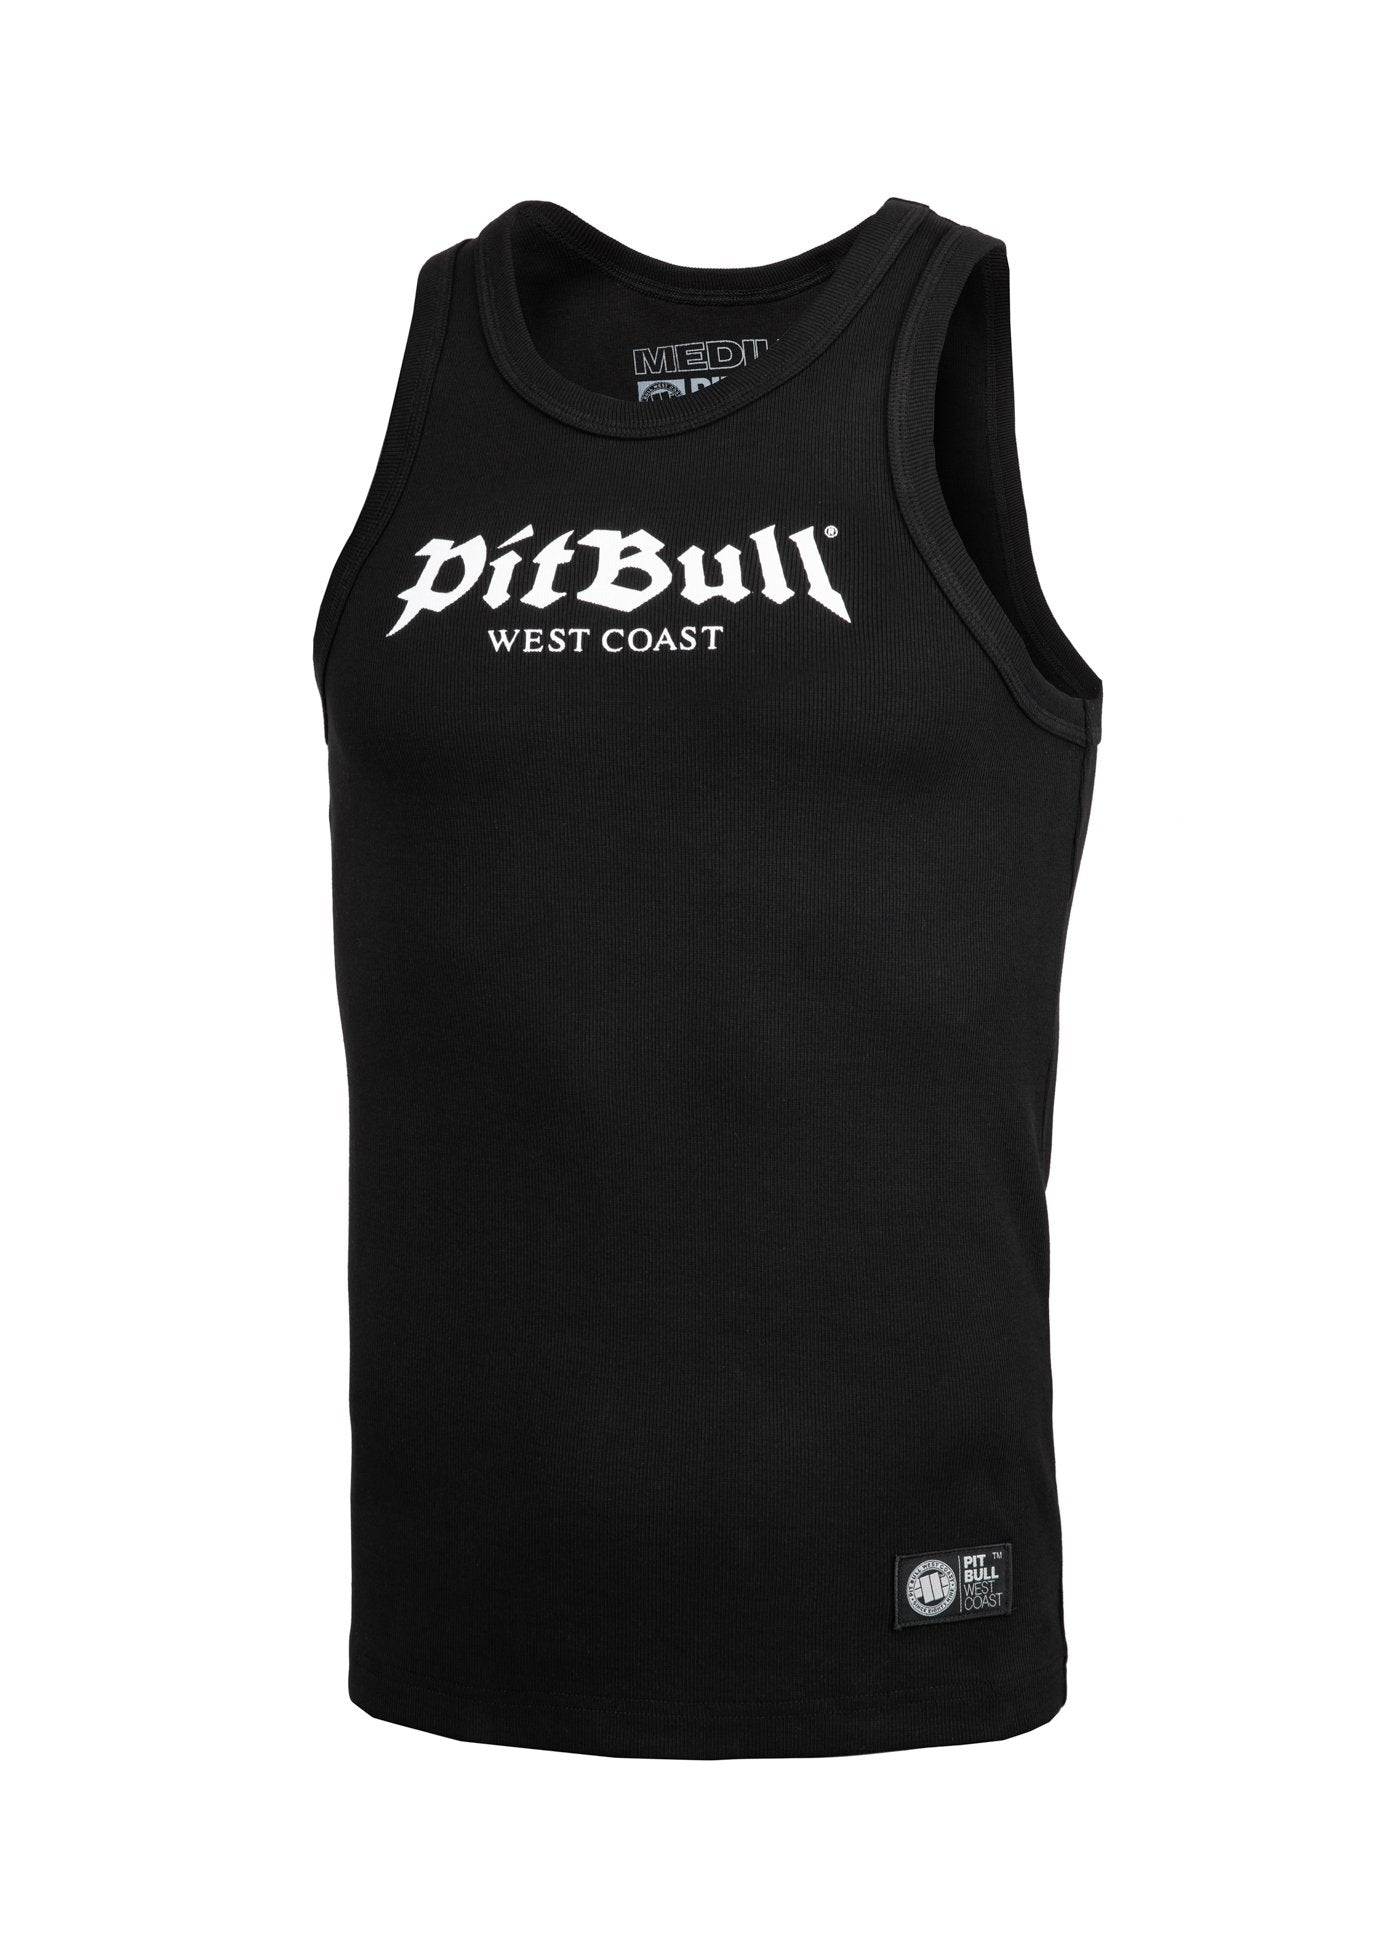 Rib Tank Top Old Logo Black - Pitbull West Coast U.S.A.